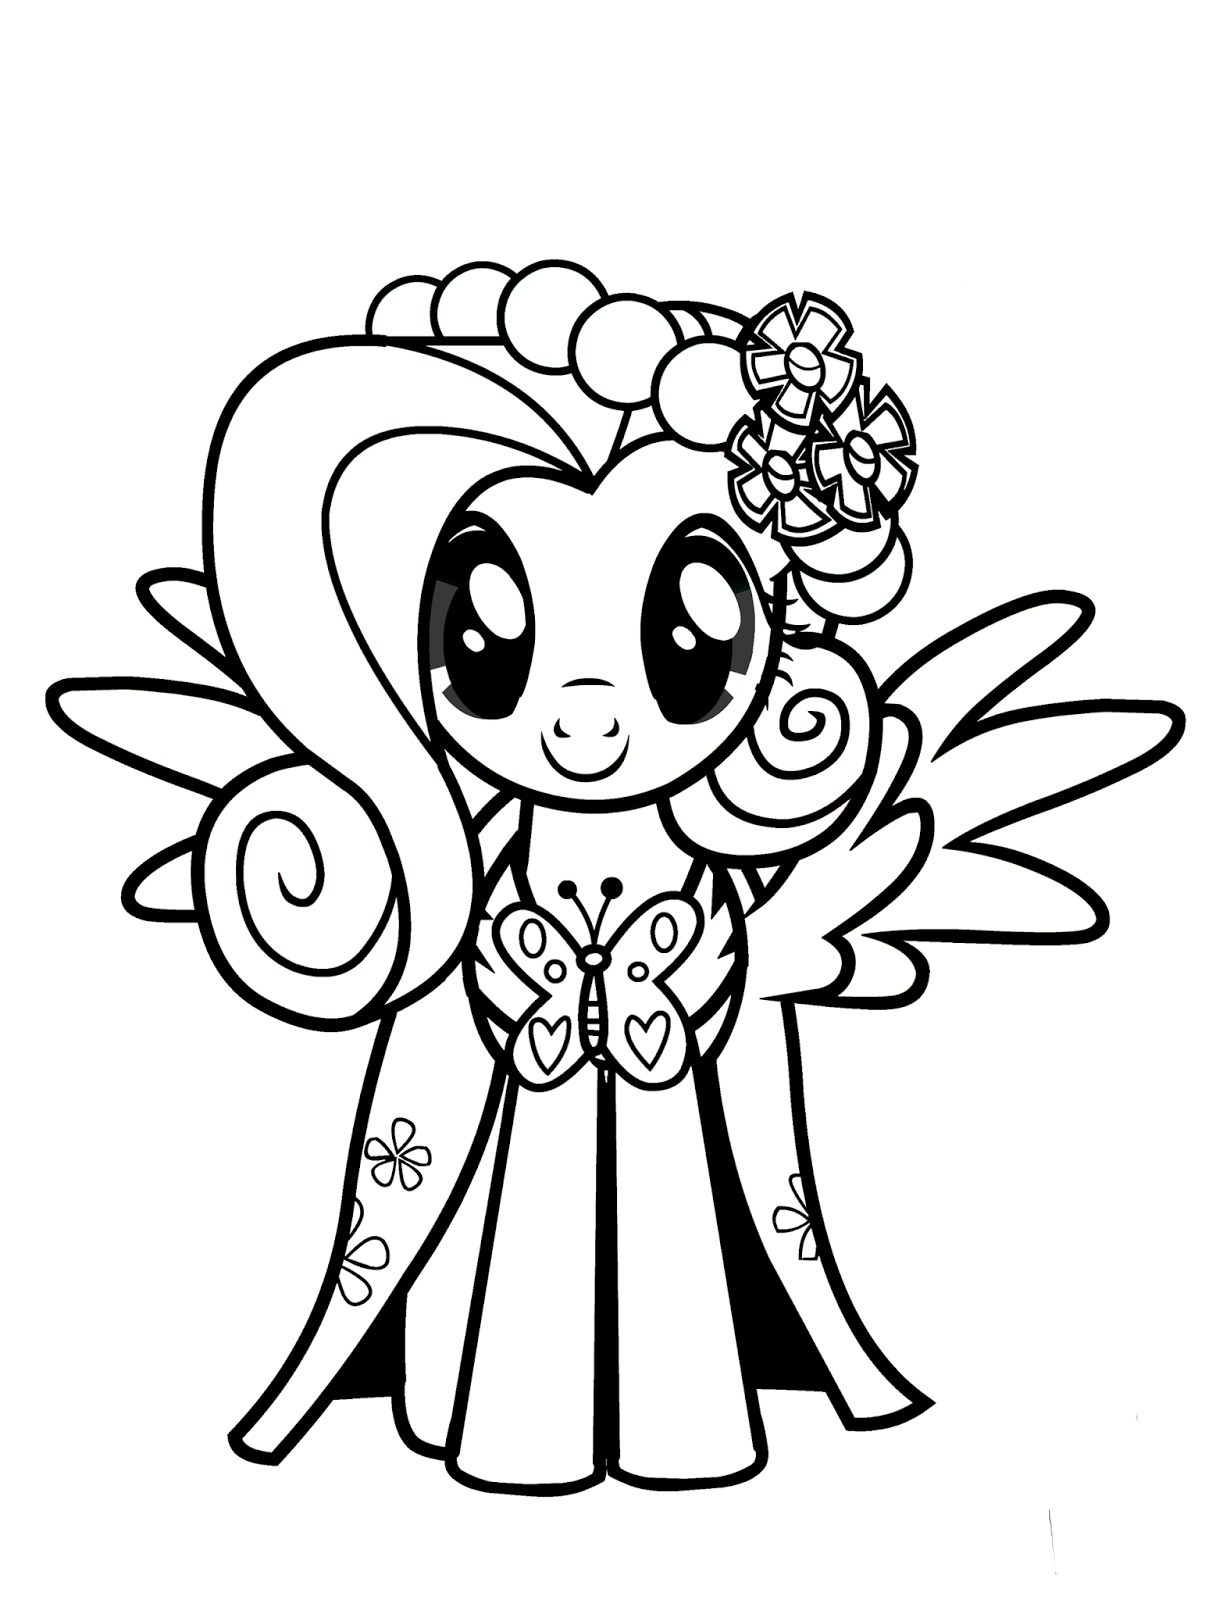 my little pony coloring pages fluttershy fluttershy coloring pages best coloring pages for kids my pages pony fluttershy coloring little